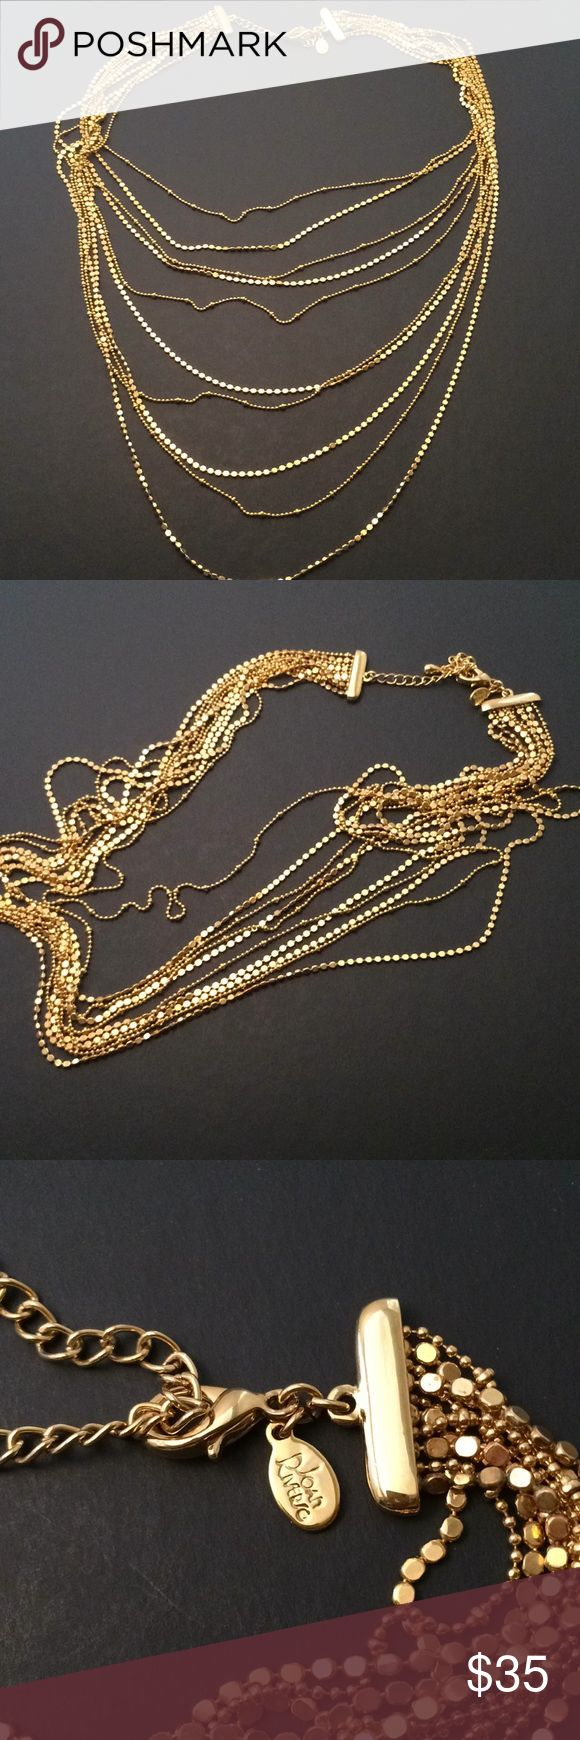 Joan rivers gold tone necklace, new Joan rivers gold tone necklace, new , without tag ,size is 18 inches , adjustable for more size, bundle to save for shipping Joan rivers Jewelry Necklaces